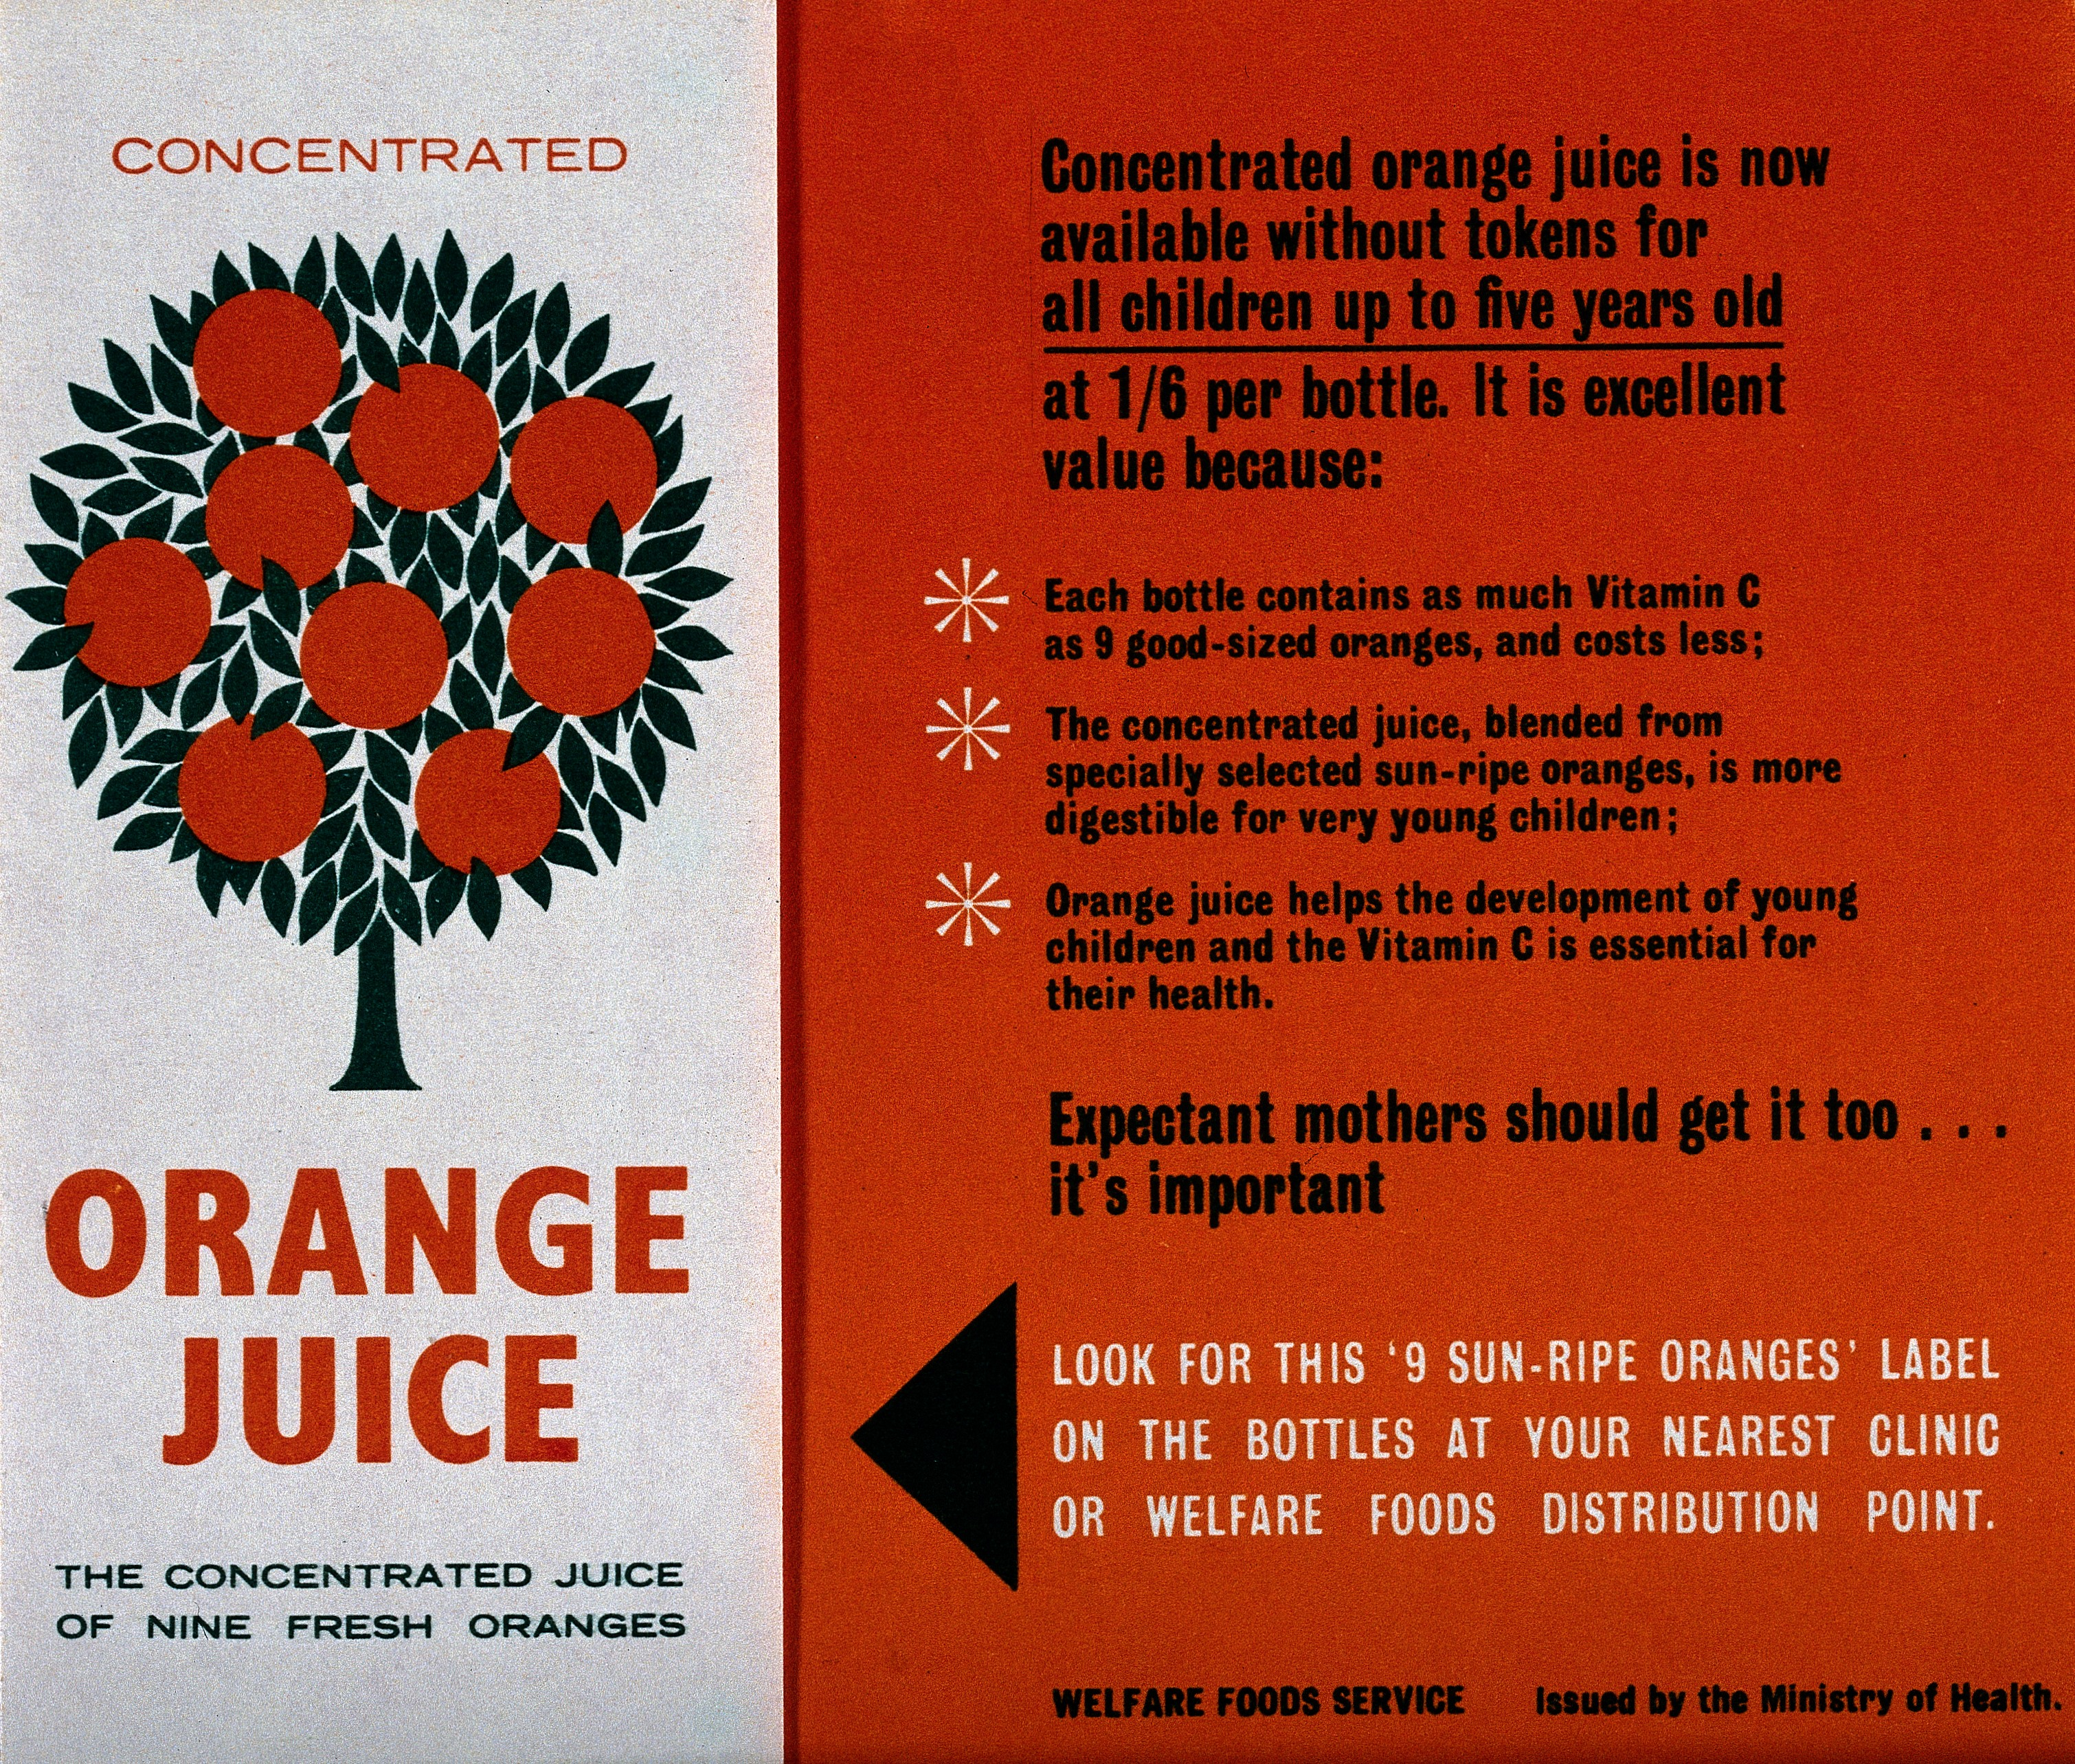 A leaflet explaining why children should get orange juice. Uses an 'fi' ligature too for some reason.